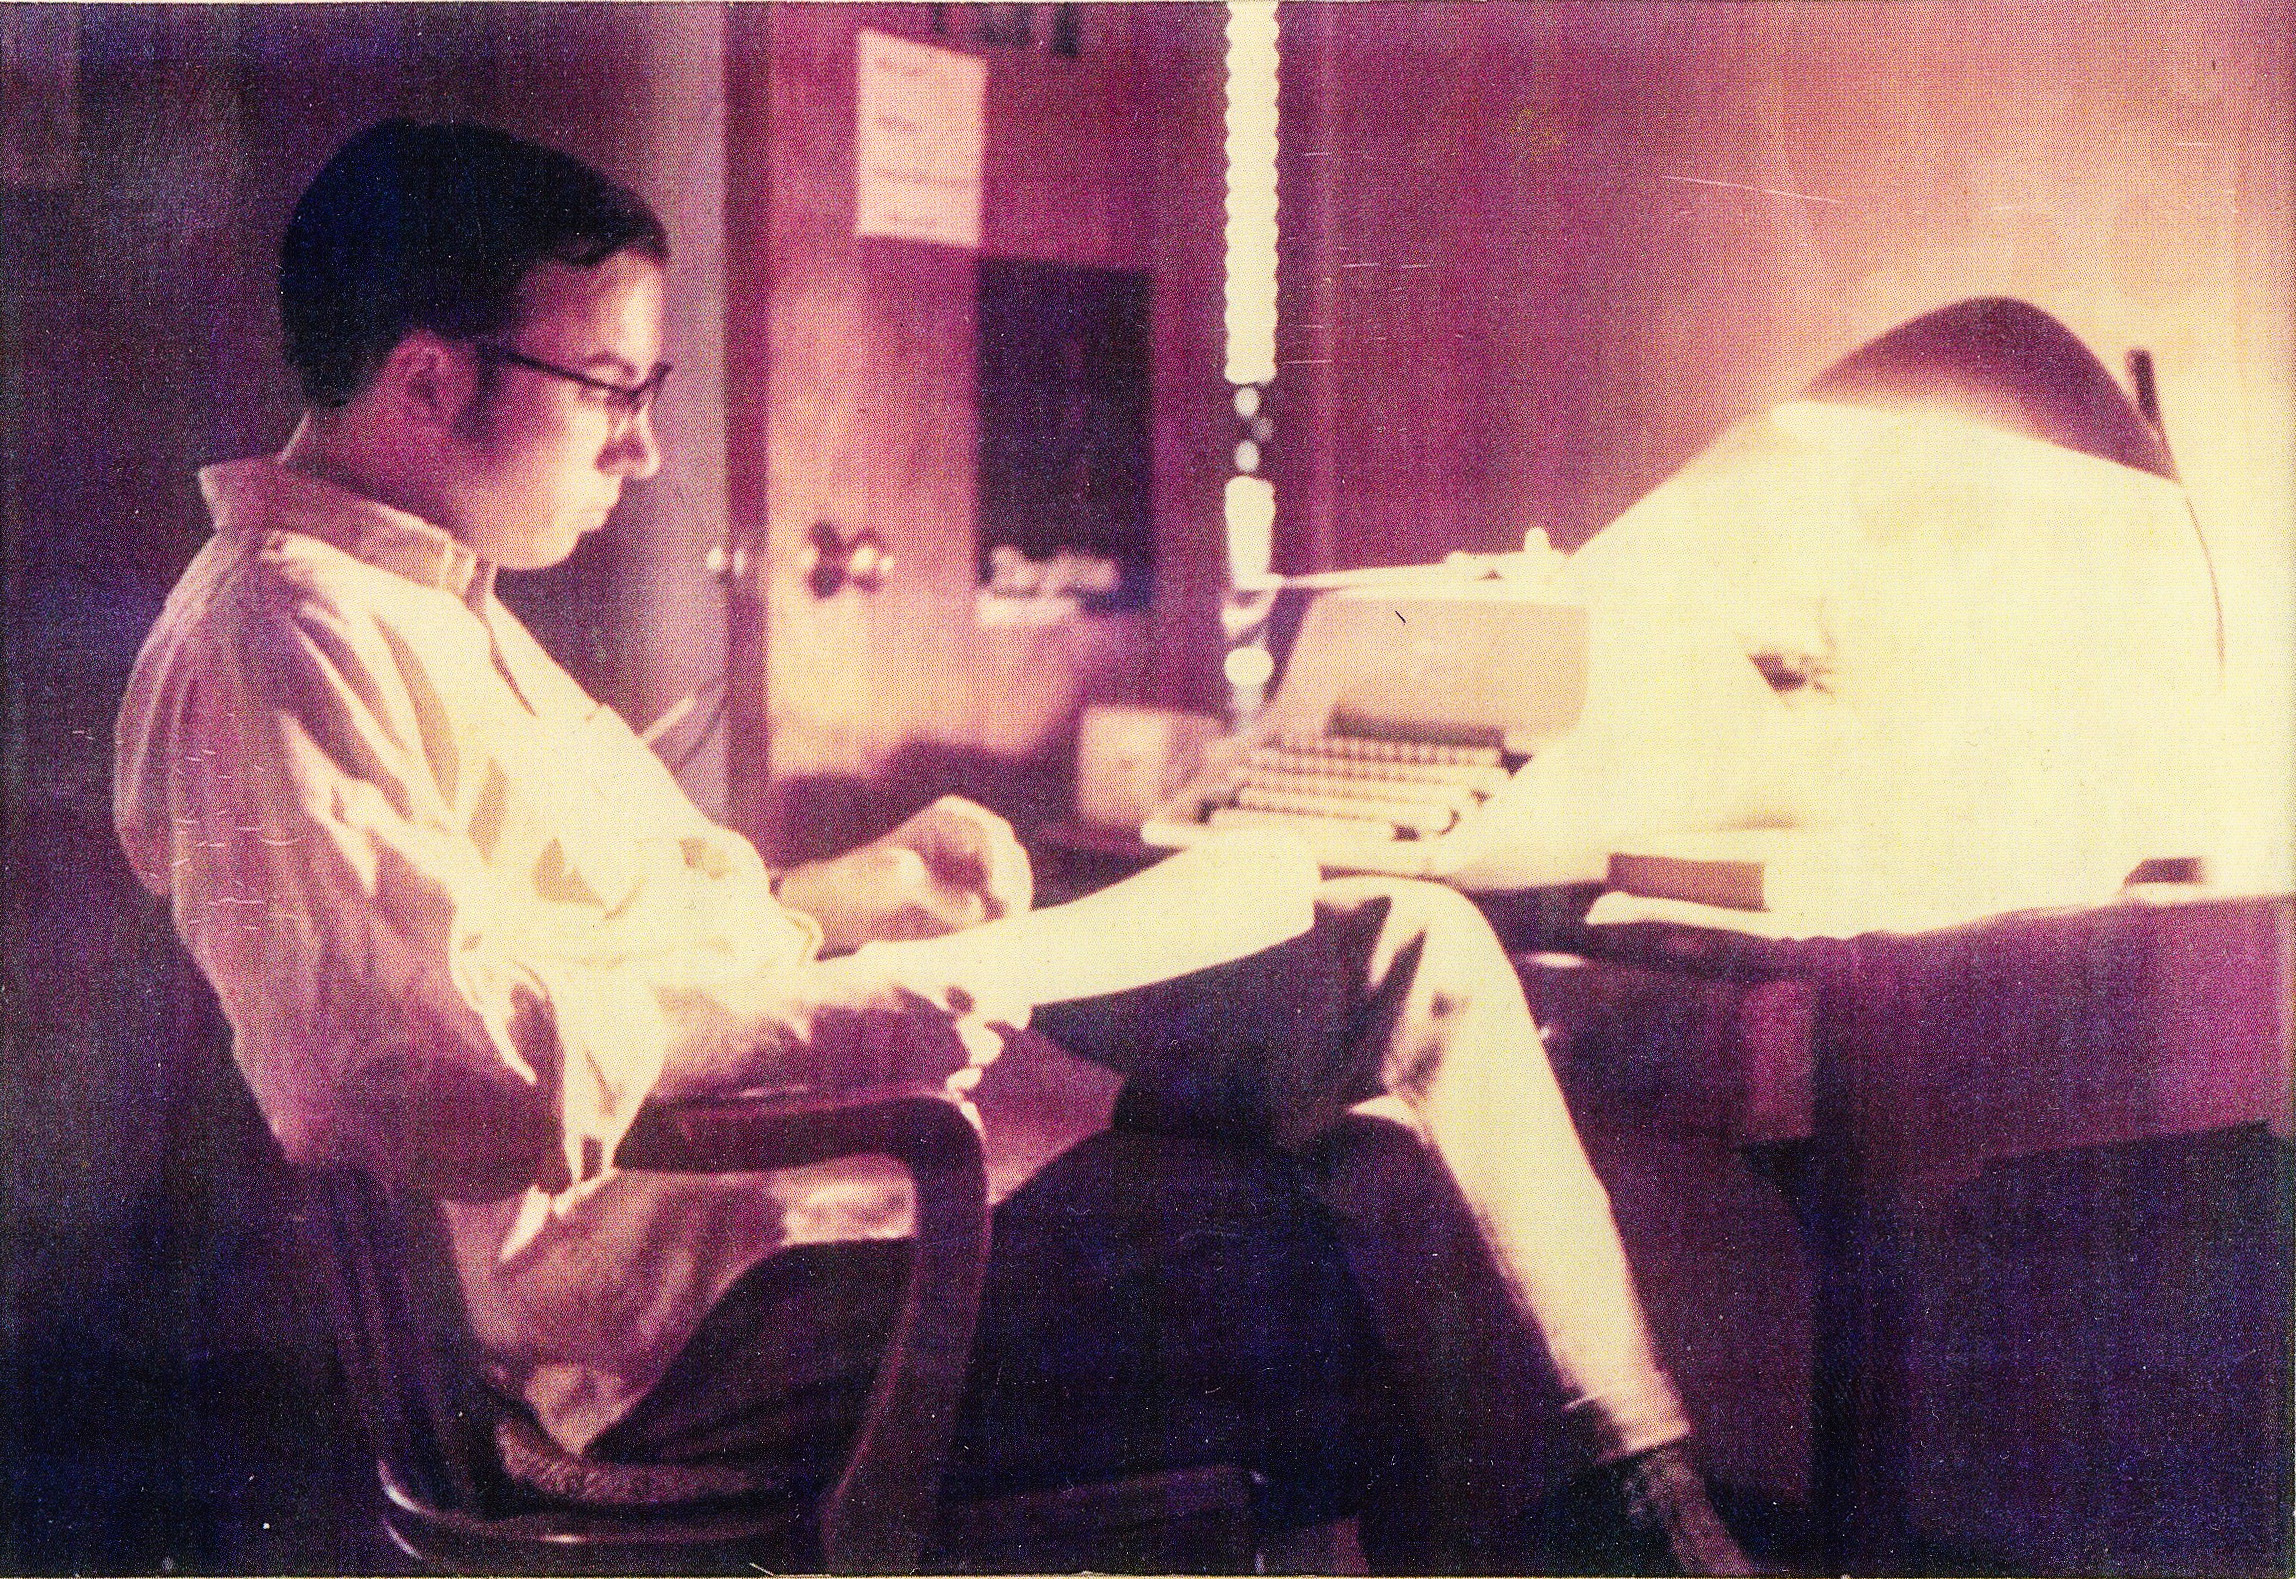 Br. David at His Desk